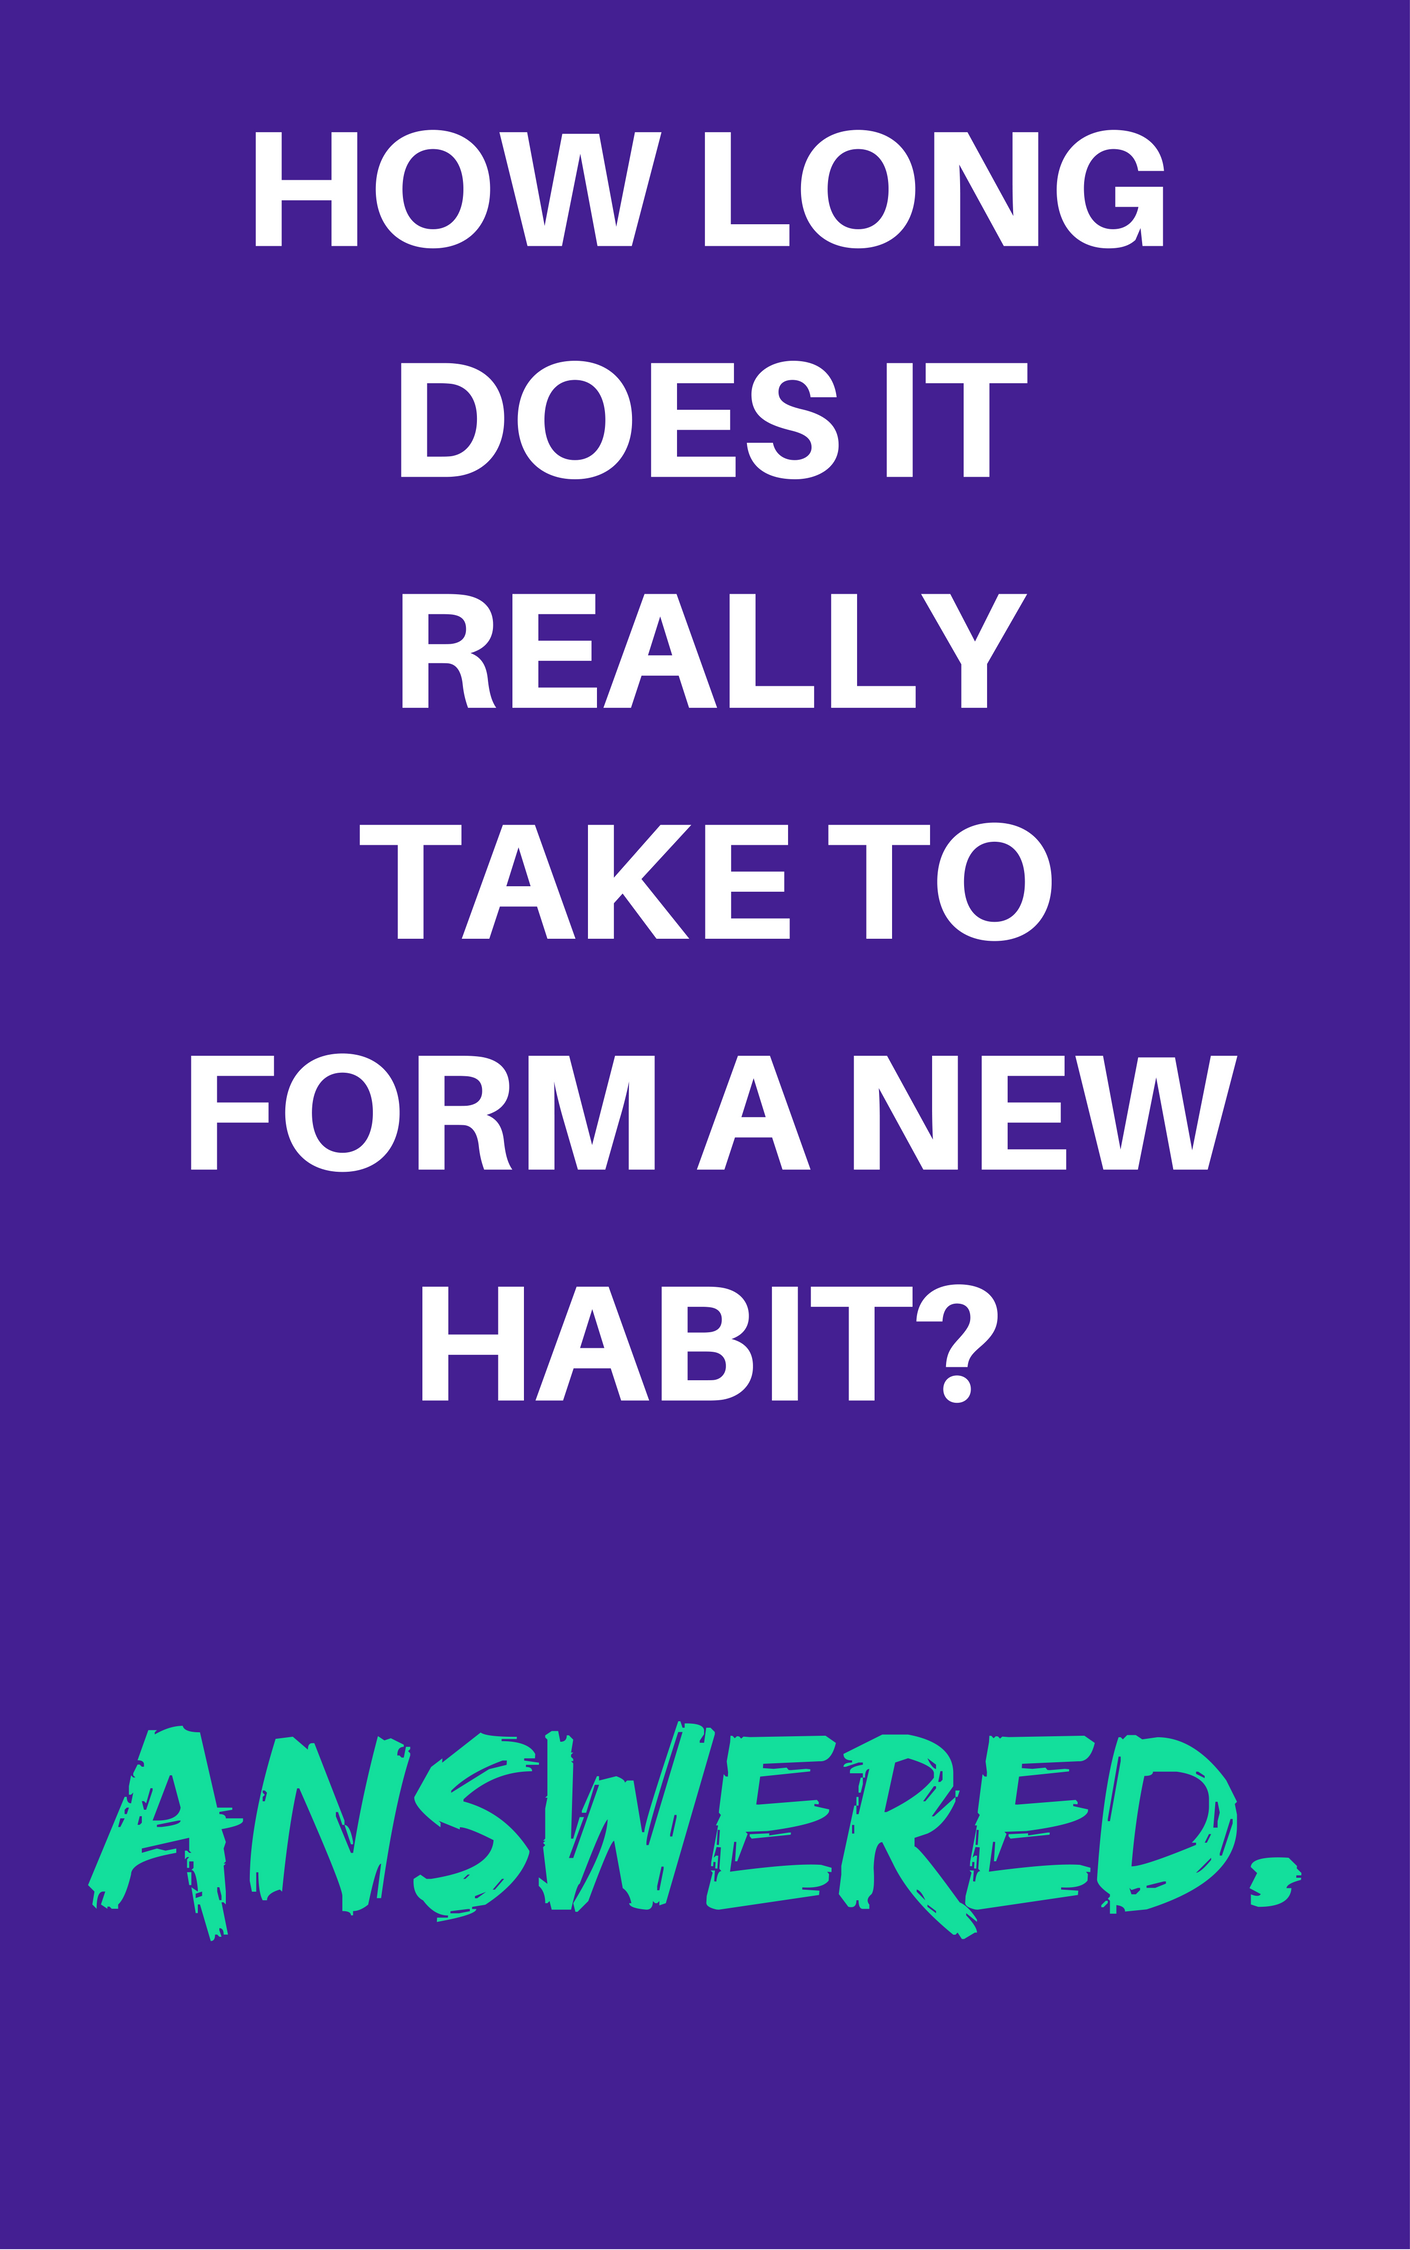 how long does it take to form a new habit